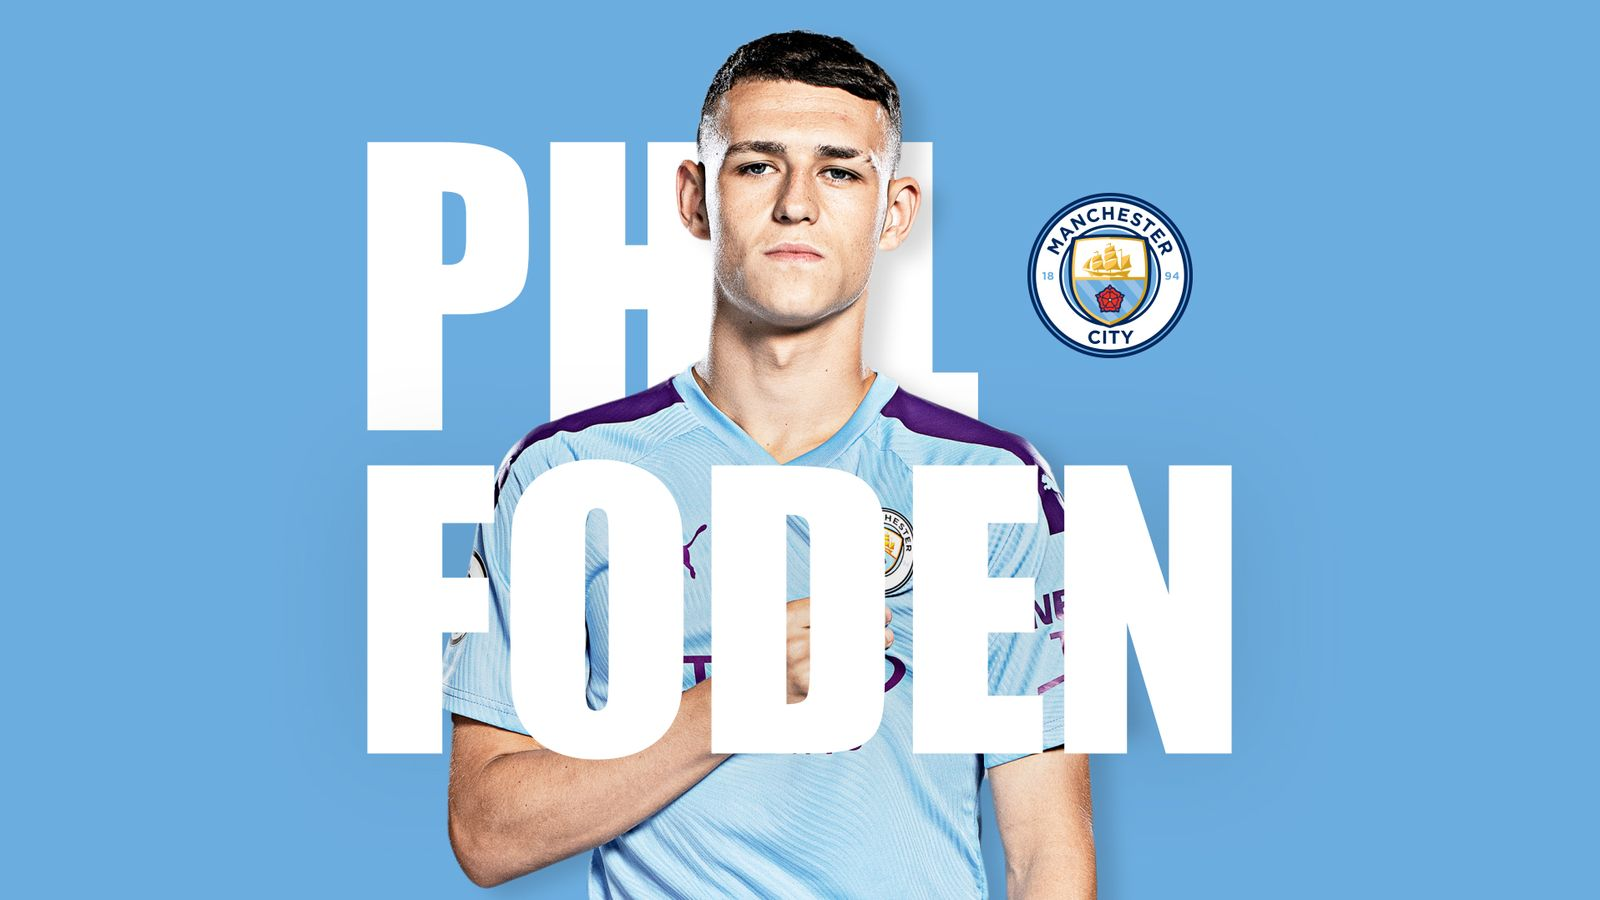 Phil Foden exclusive interview: Manchester City star on David Silva,  improvement, position and fishing | Football News